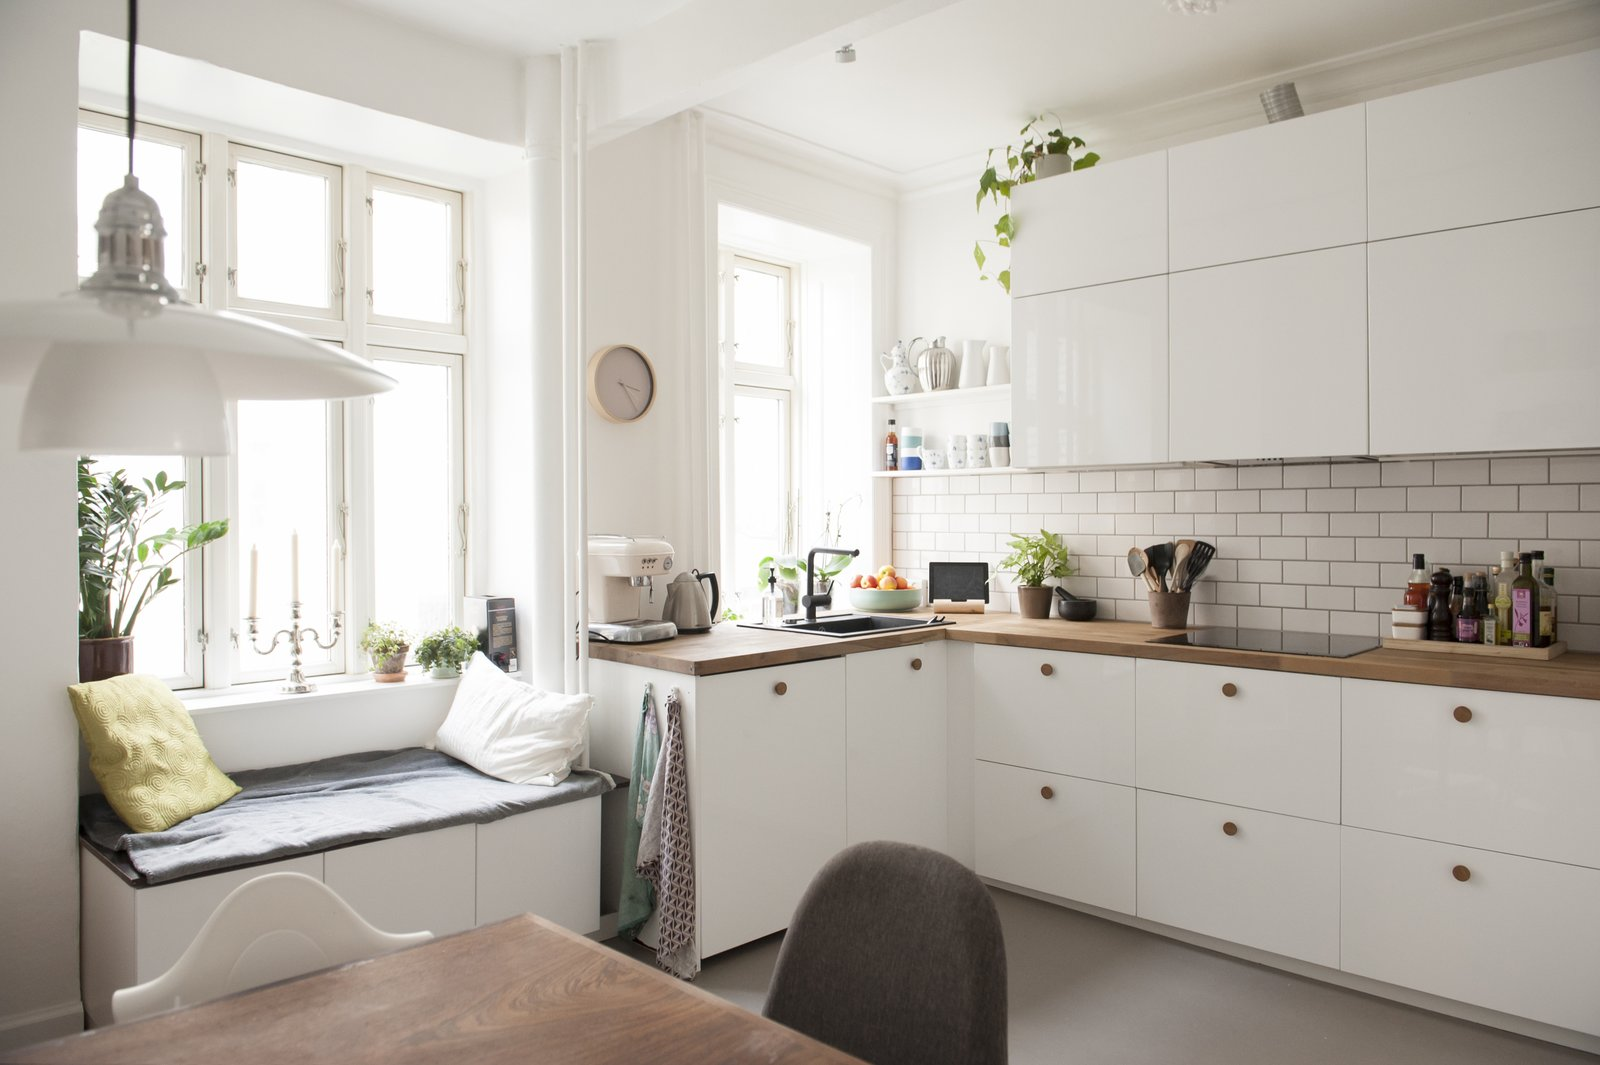 Kitchen, Wood Counter, White Cabinet, Dark Hardwood Floor, Subway Tile Backsplashe, Pendant Lighting, and Drop In Sink white modern kitchen   Pretty and Sweet Family Flat by Petra Ford